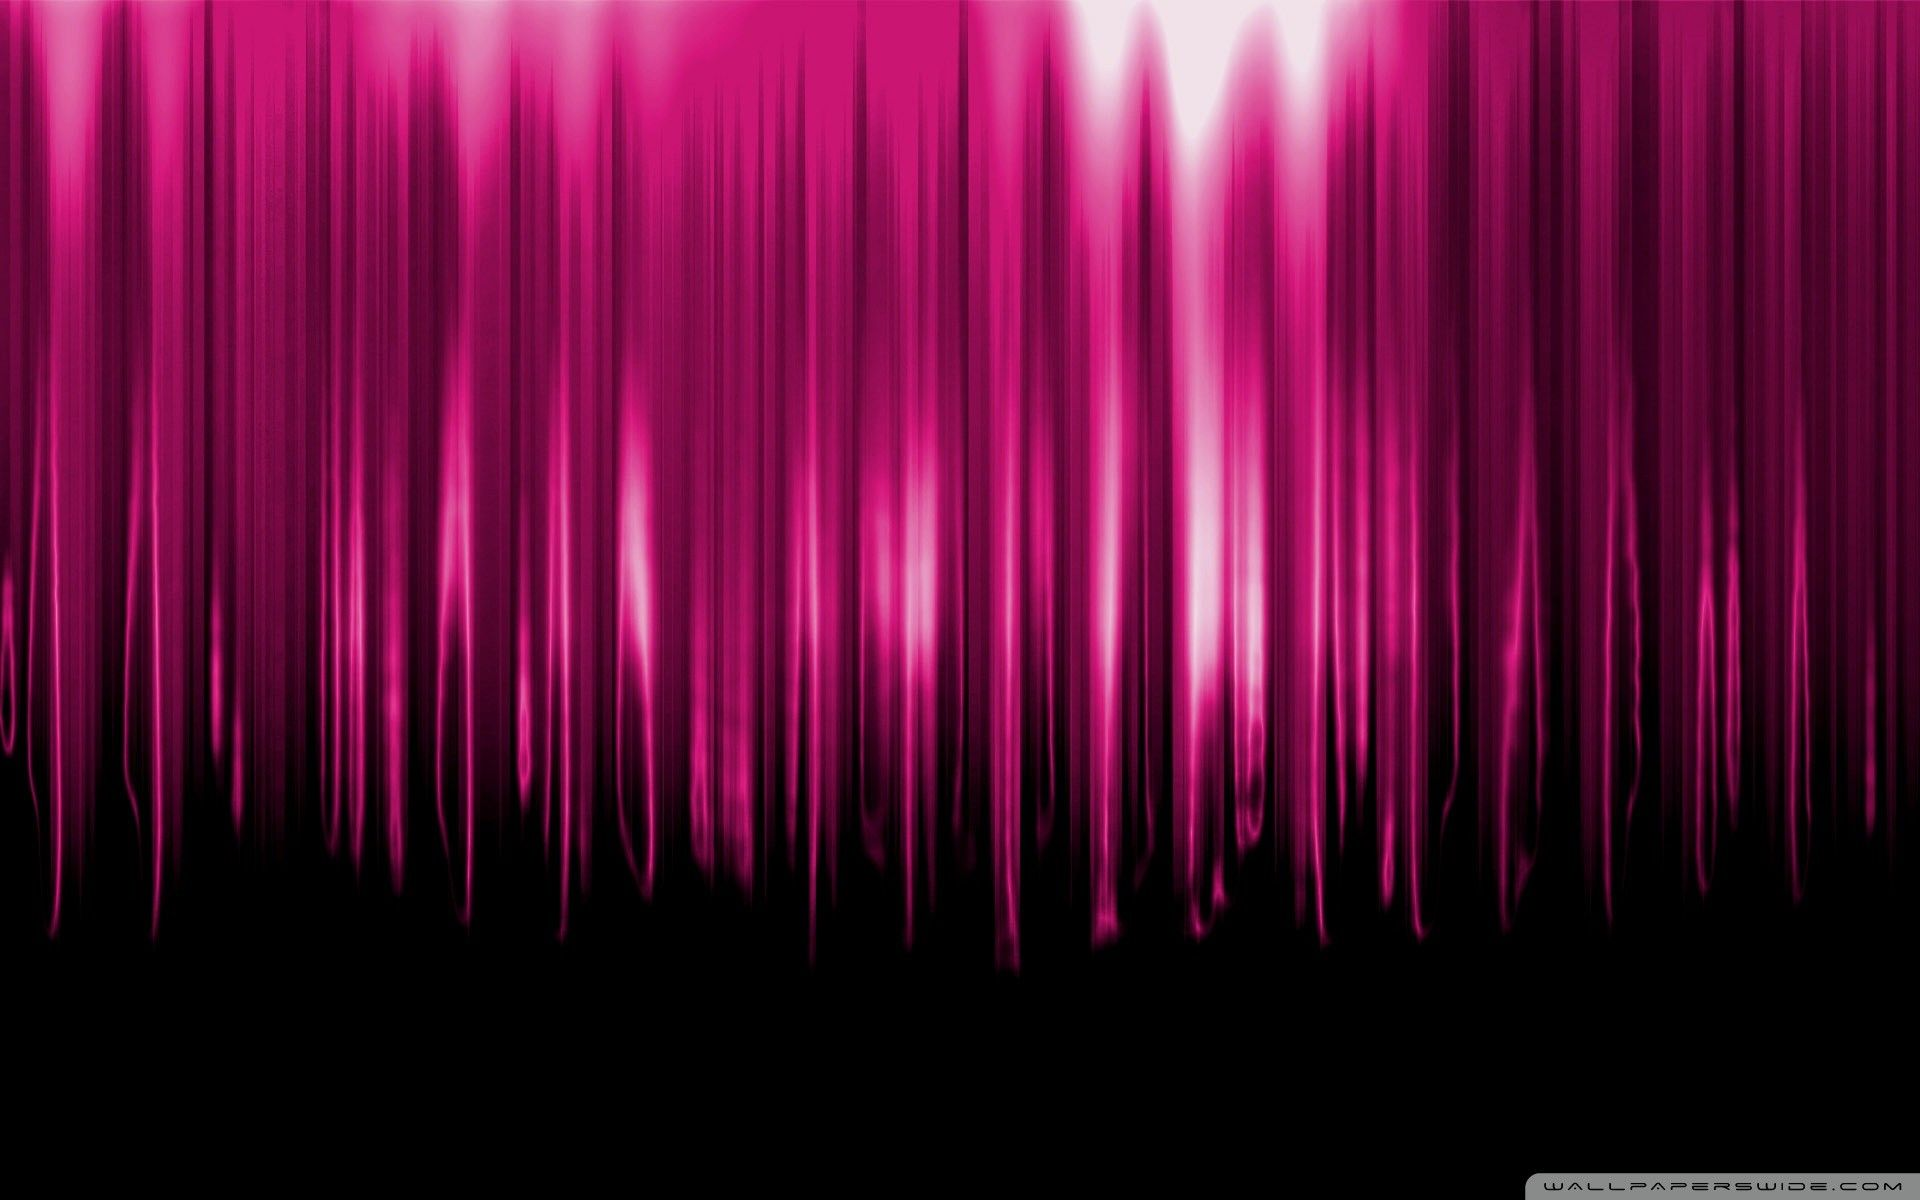 pink curtain background awesome wallpapers pinterest With pink curtains background